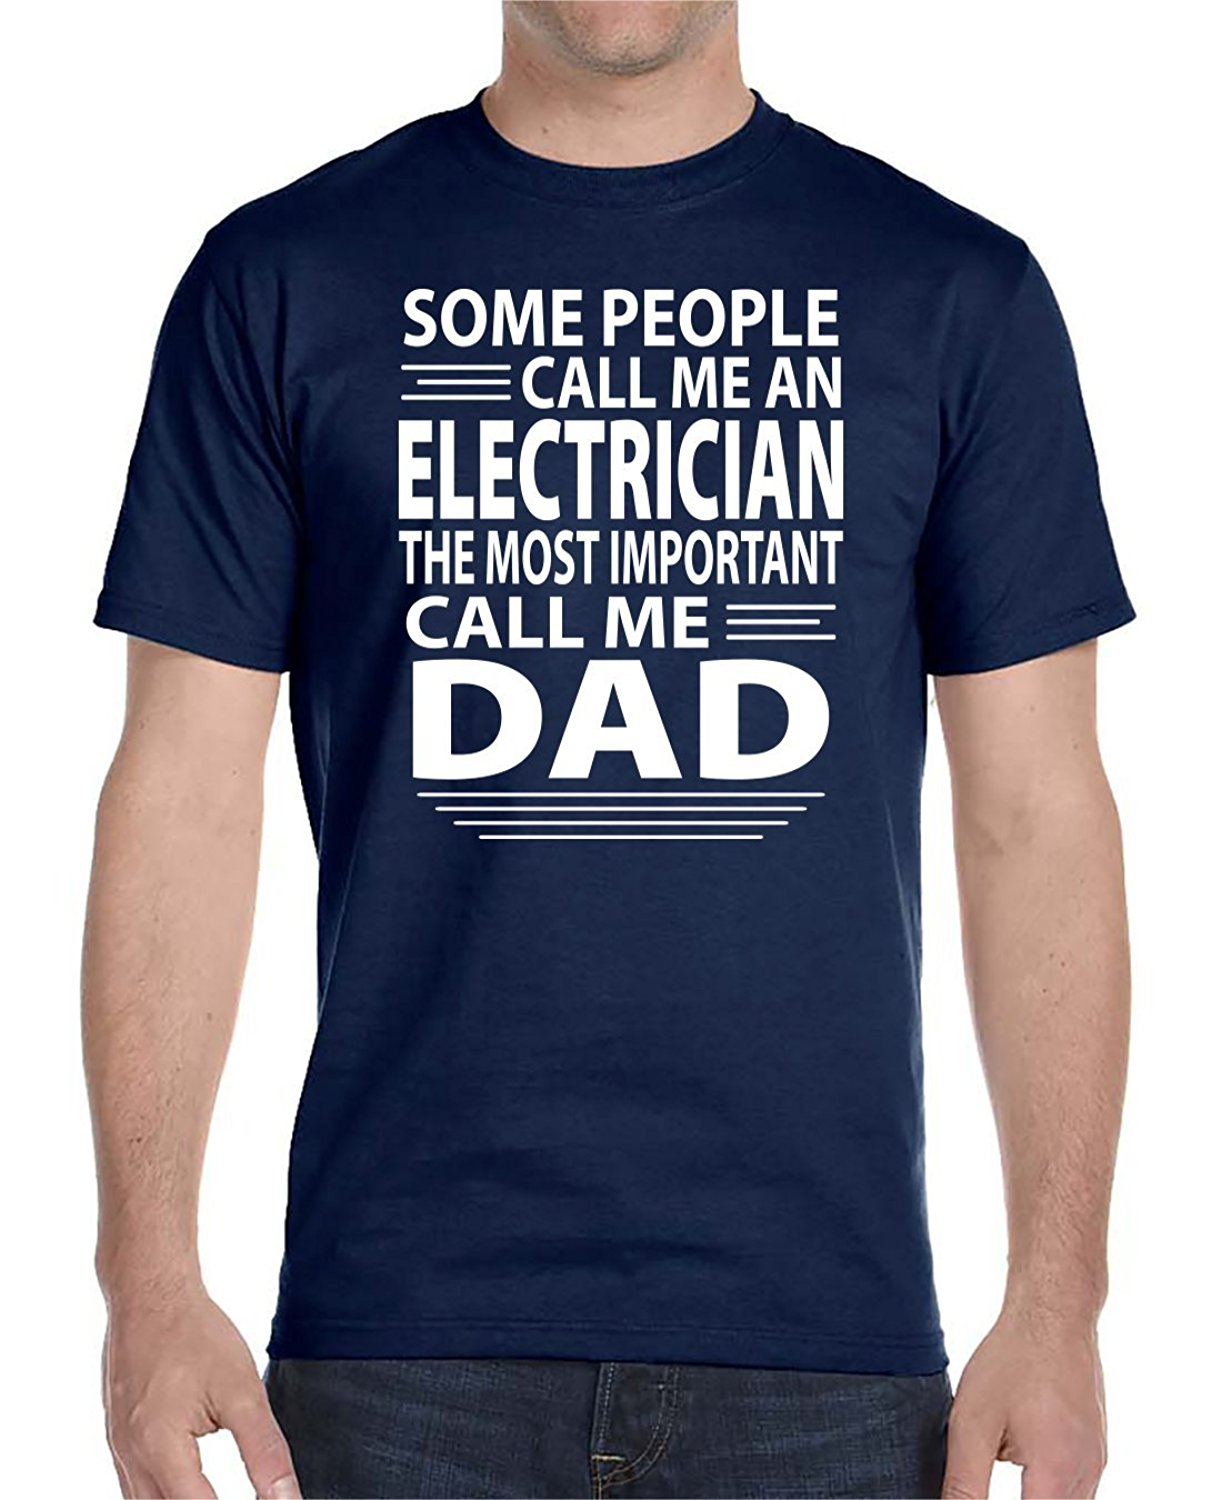 Some People Call Me An Electrician The Most Important Call Me Dad - Unisex T-Shirt -Electrician Shirt - Electrician Gift